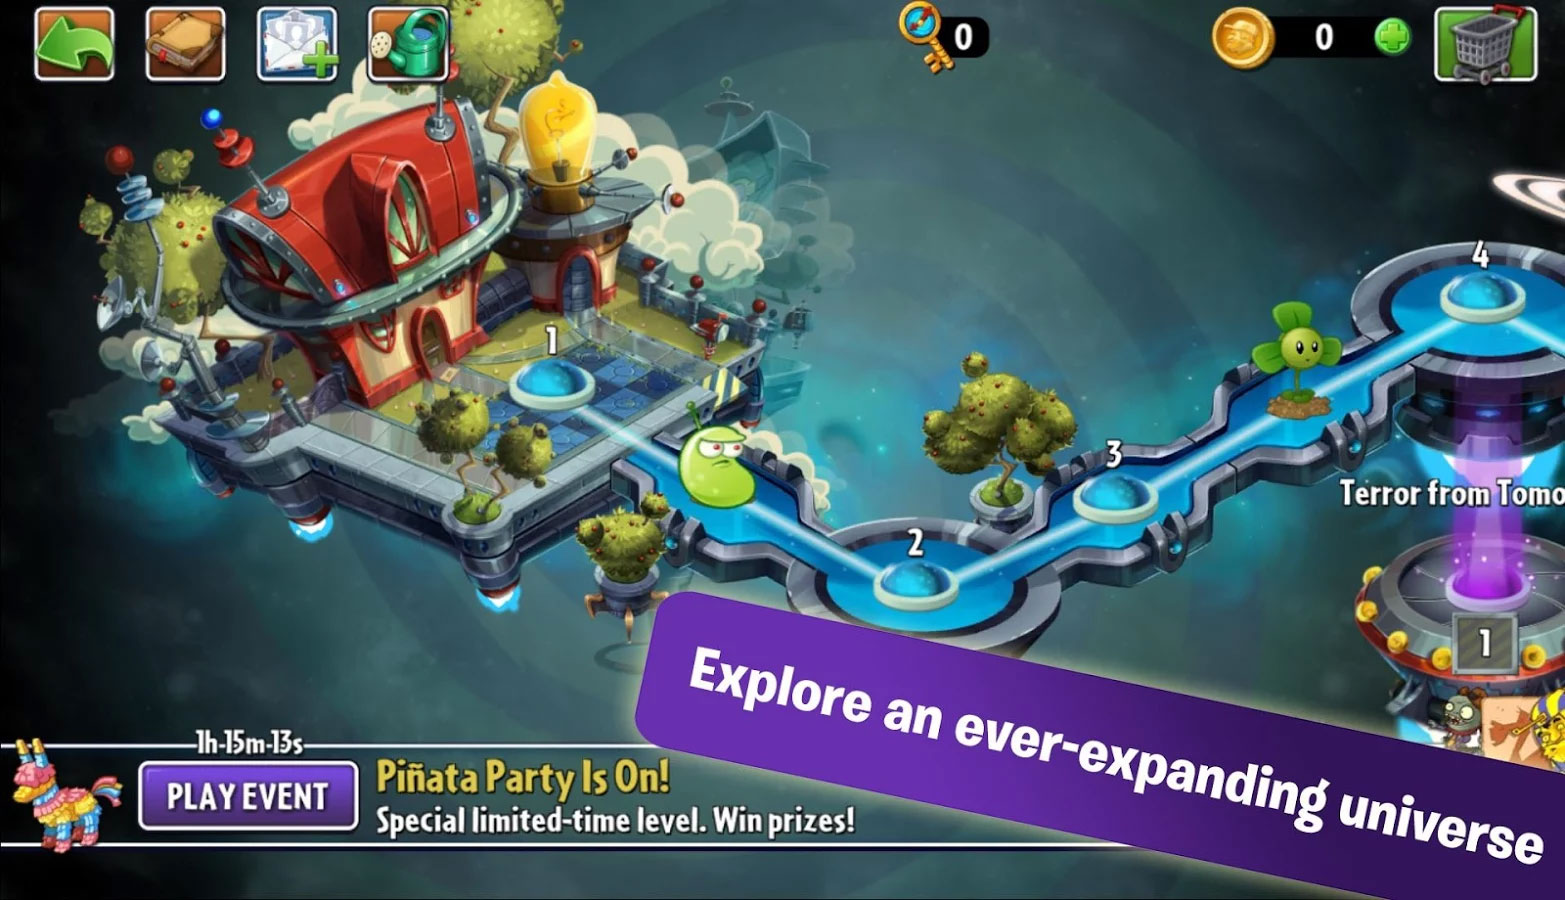 http://www.apktops.ir/wp-content/uploads/2014/02/Plants-vs.-Zombies-2-5.jpg